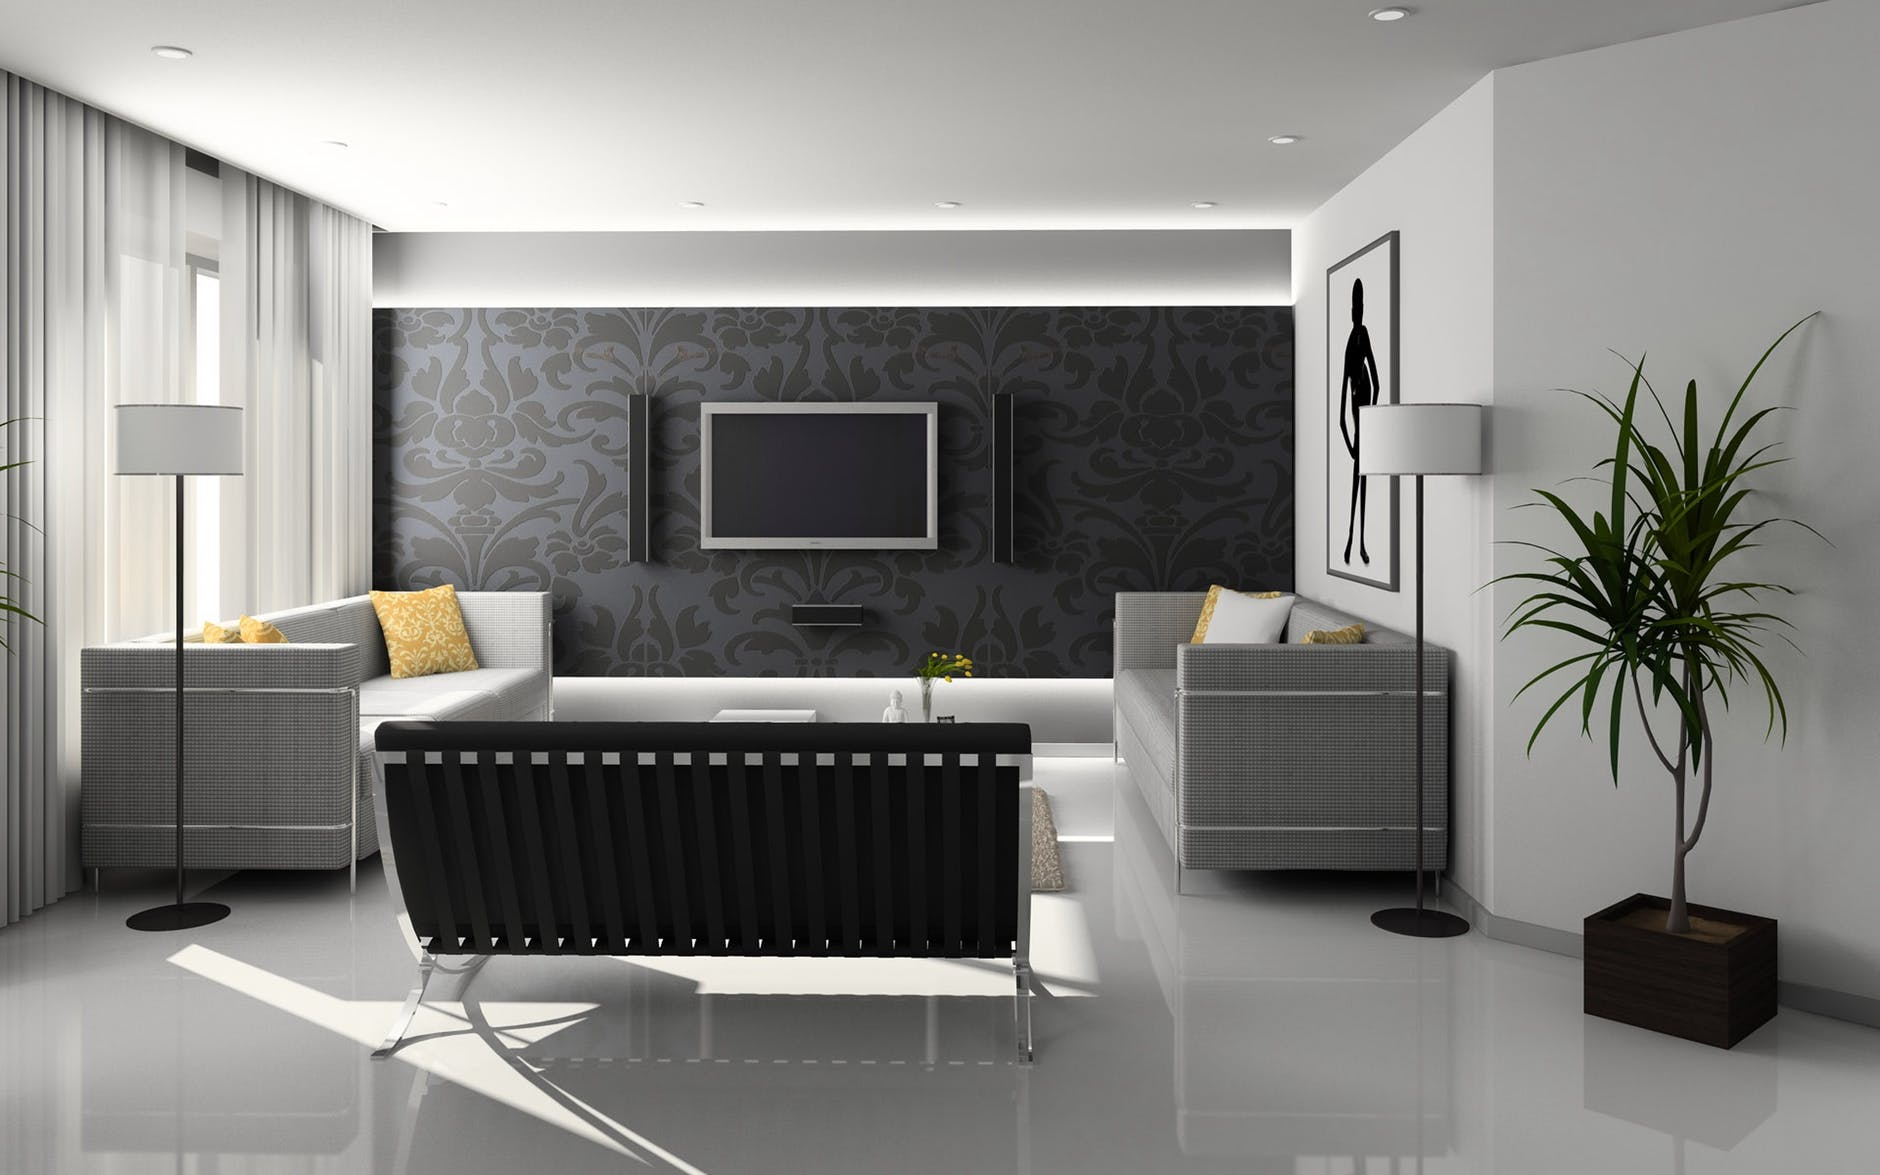 House and Property Renovations Bournemouth, Poole & Dorset